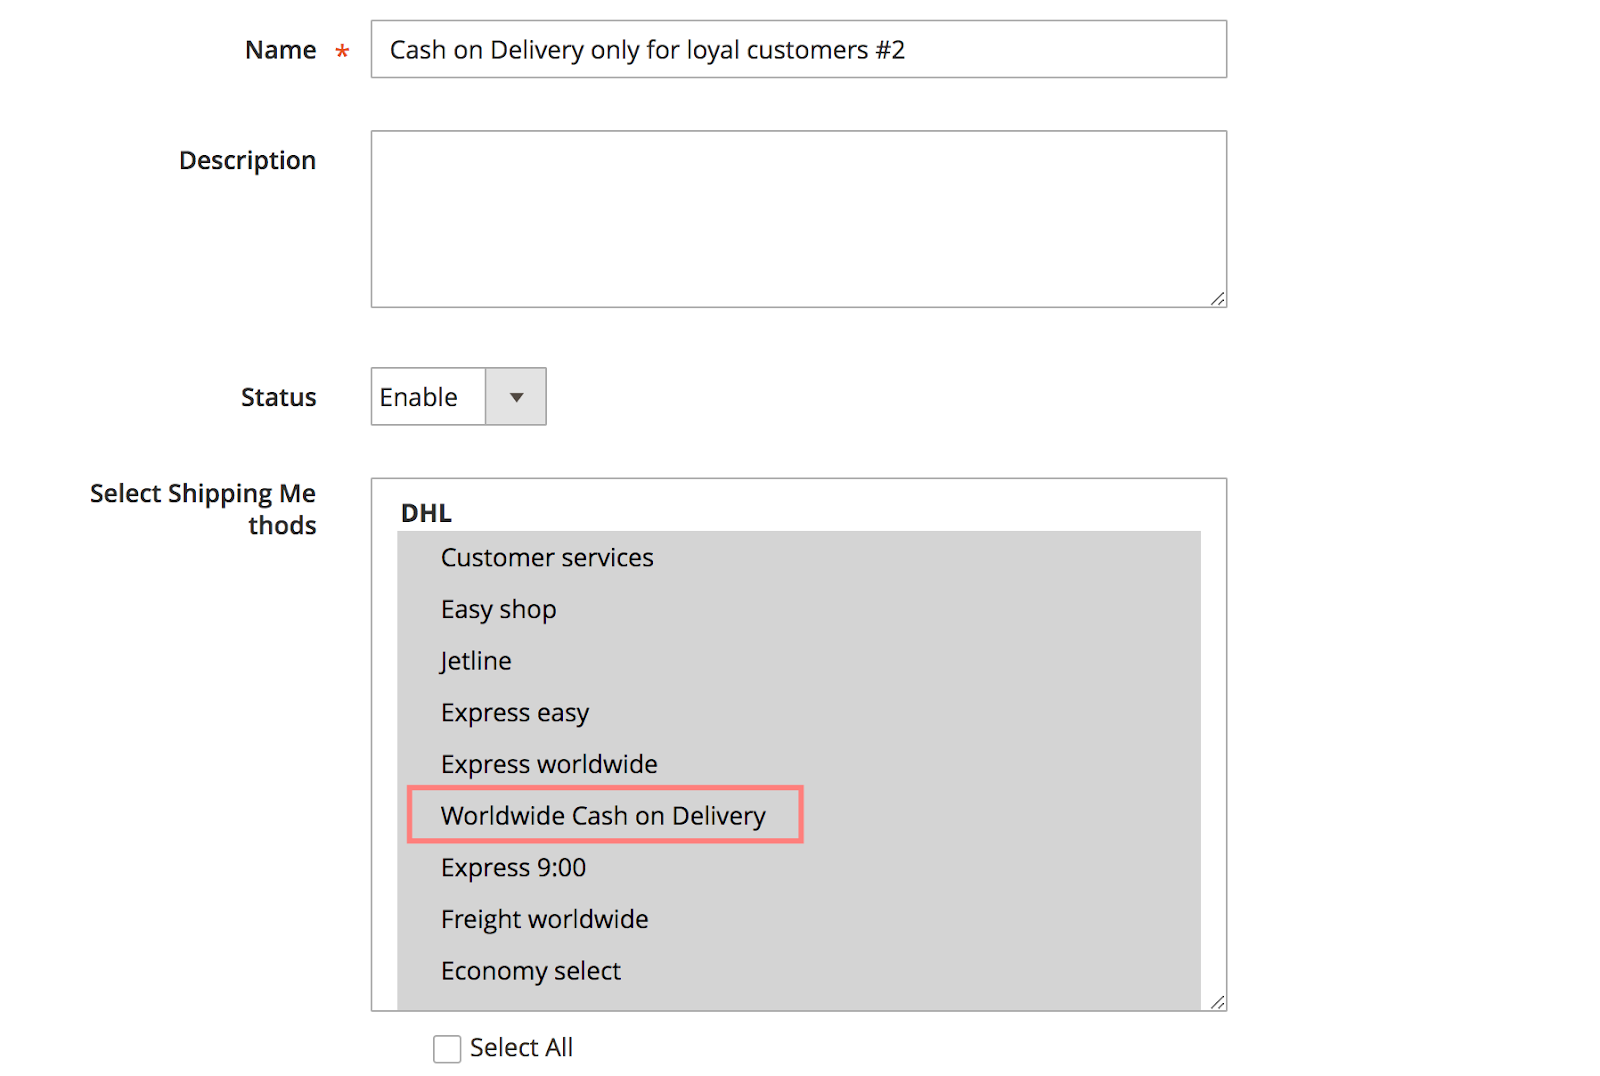 Enable Cash on Delivery only for specific group of customers - Rule #1